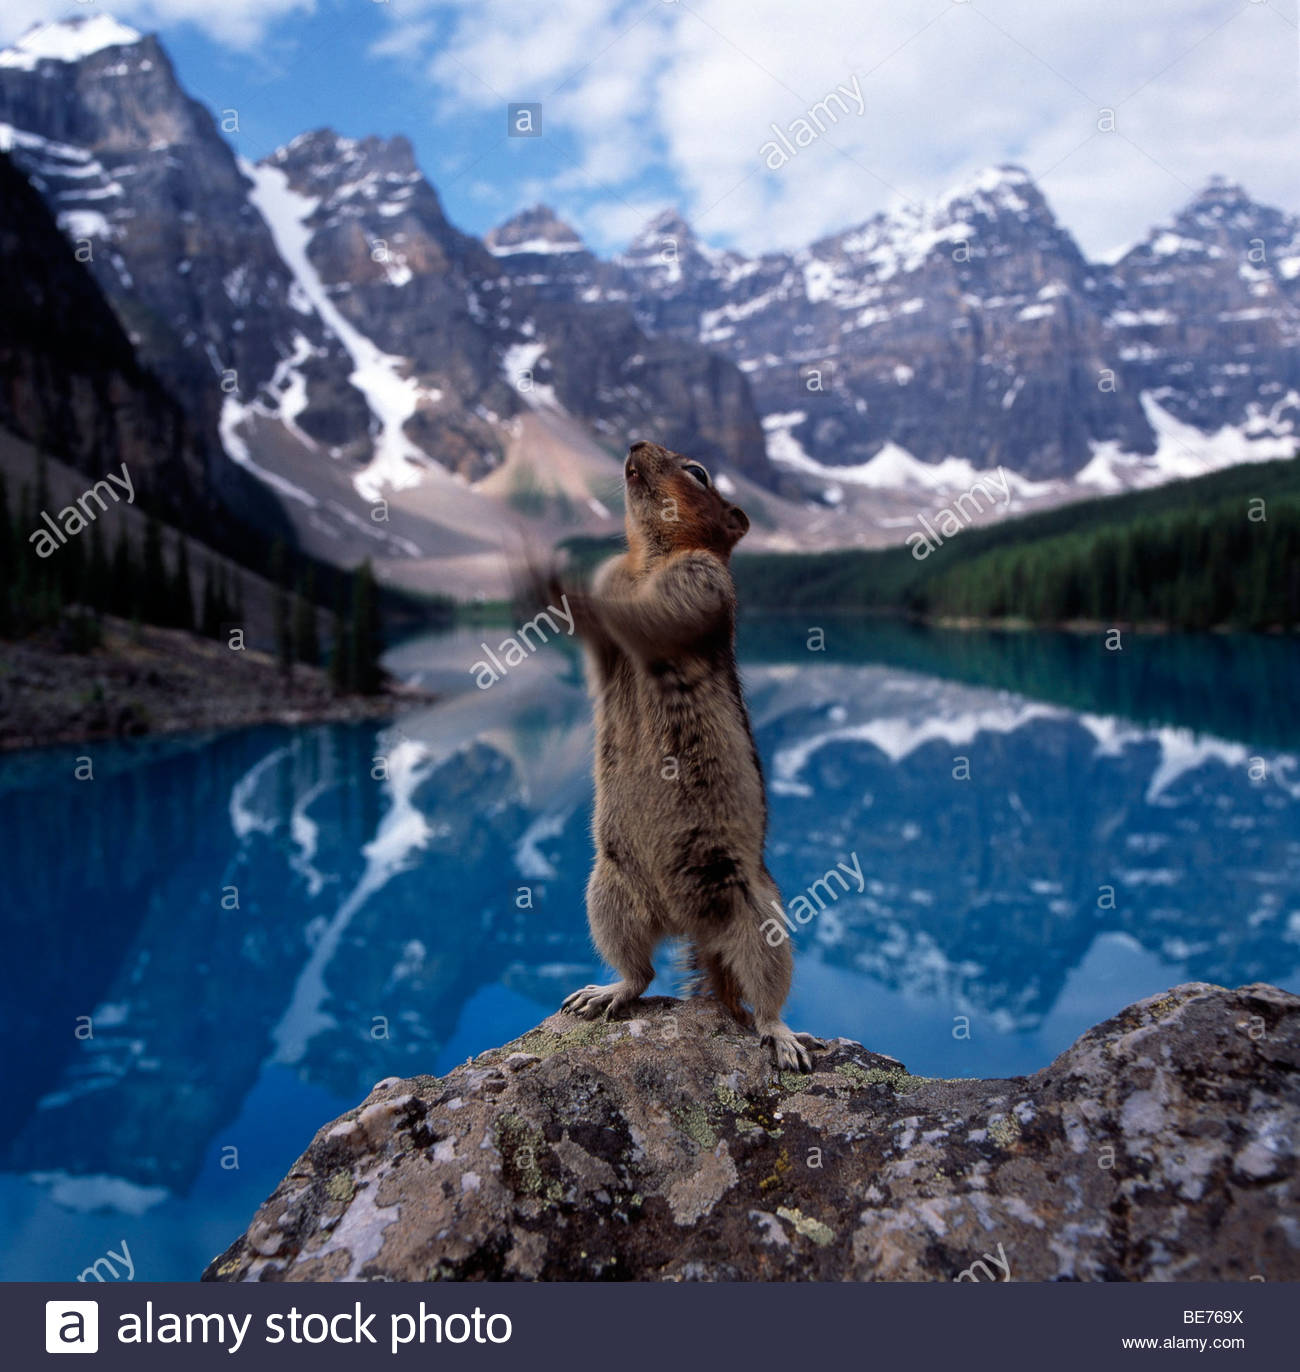 Squirrel standing on a rock Stock Photo